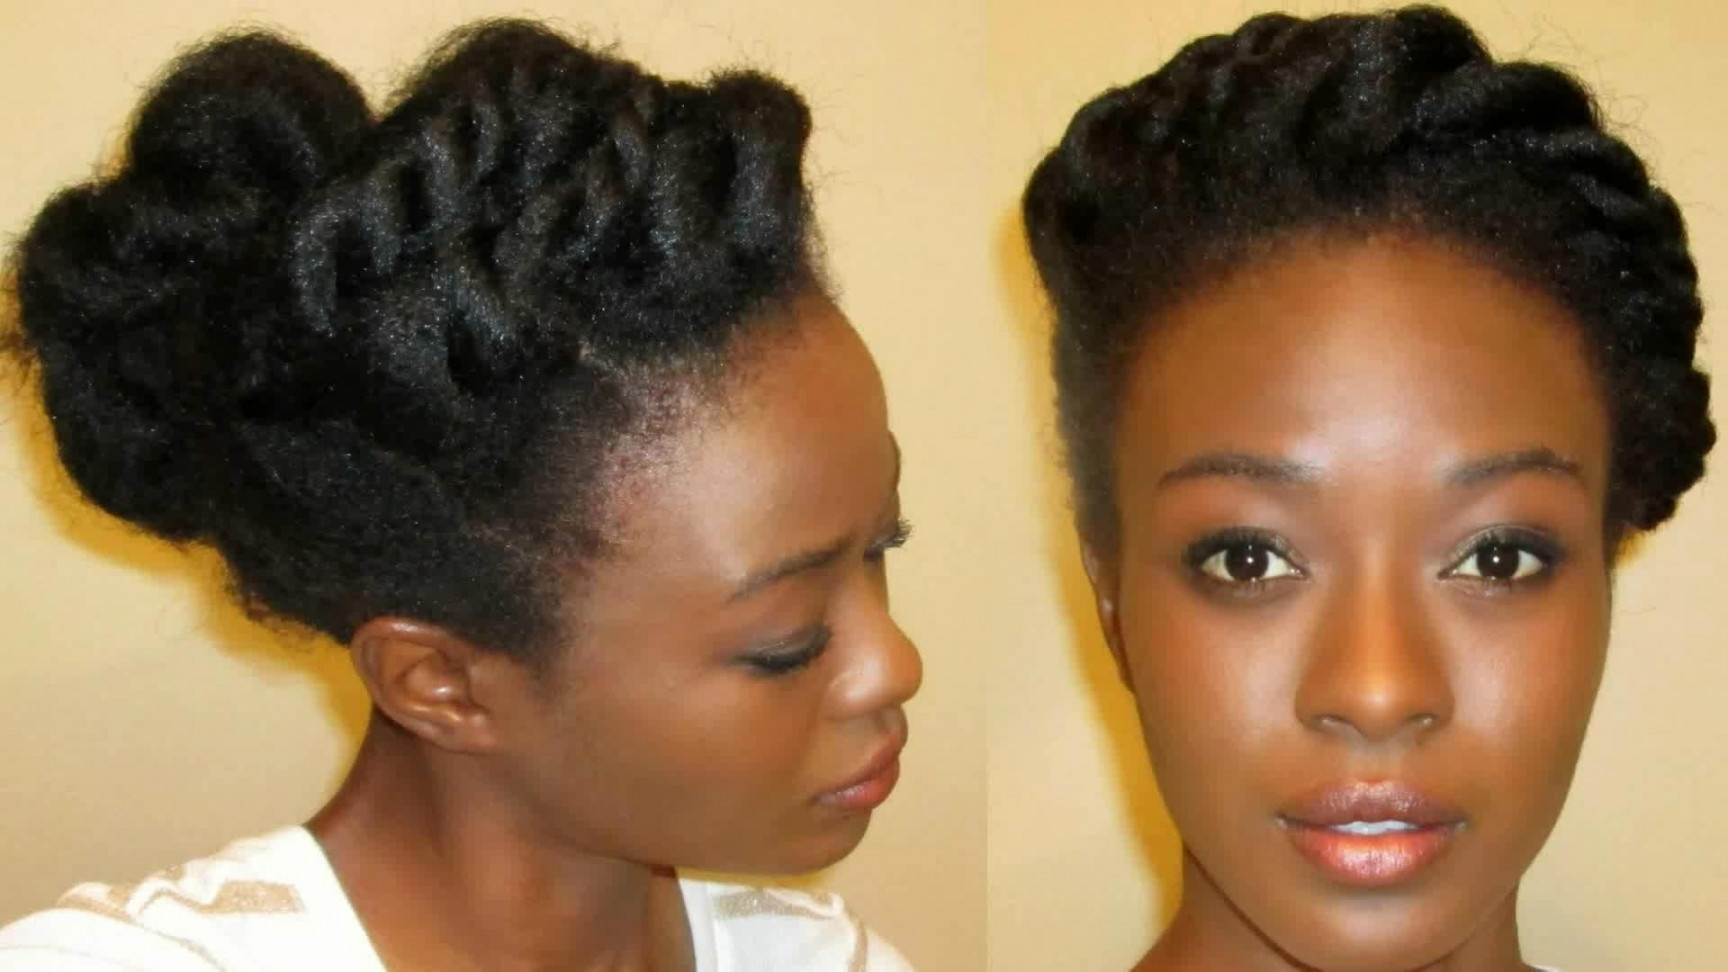 Two Strand Twist Updo On Stretched 4c Natural Hair – Youtube With Regard To Two Strand Twist Updo Hairstyles For Natural Hair (View 9 of 15)